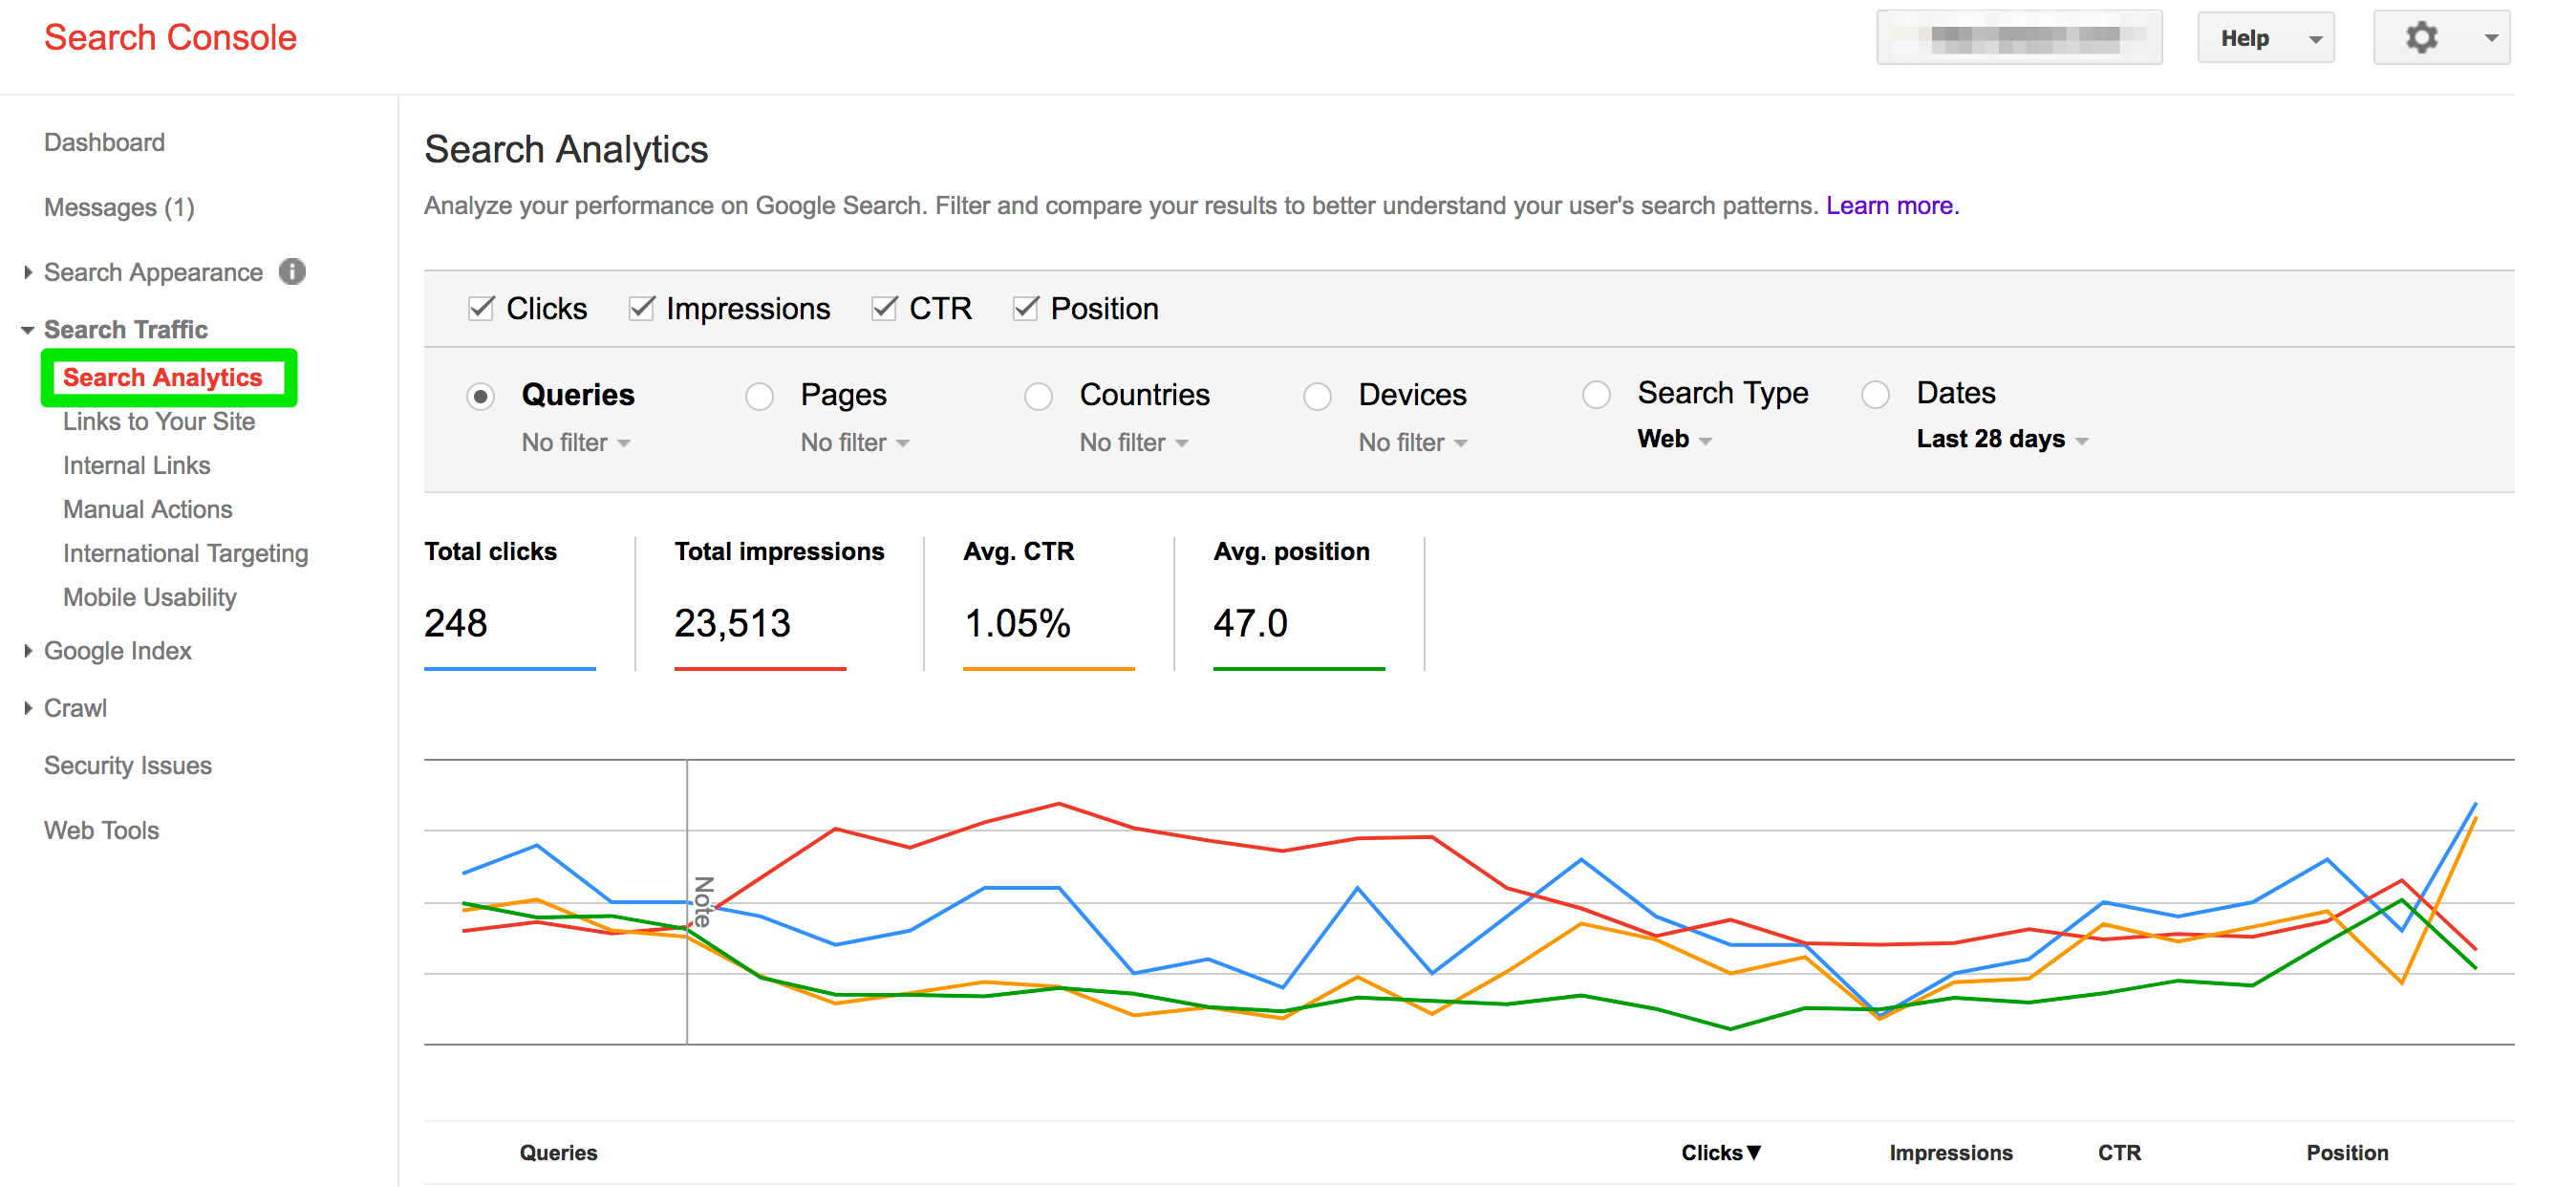 google search console is a great tool for finding the best keywords for your blog